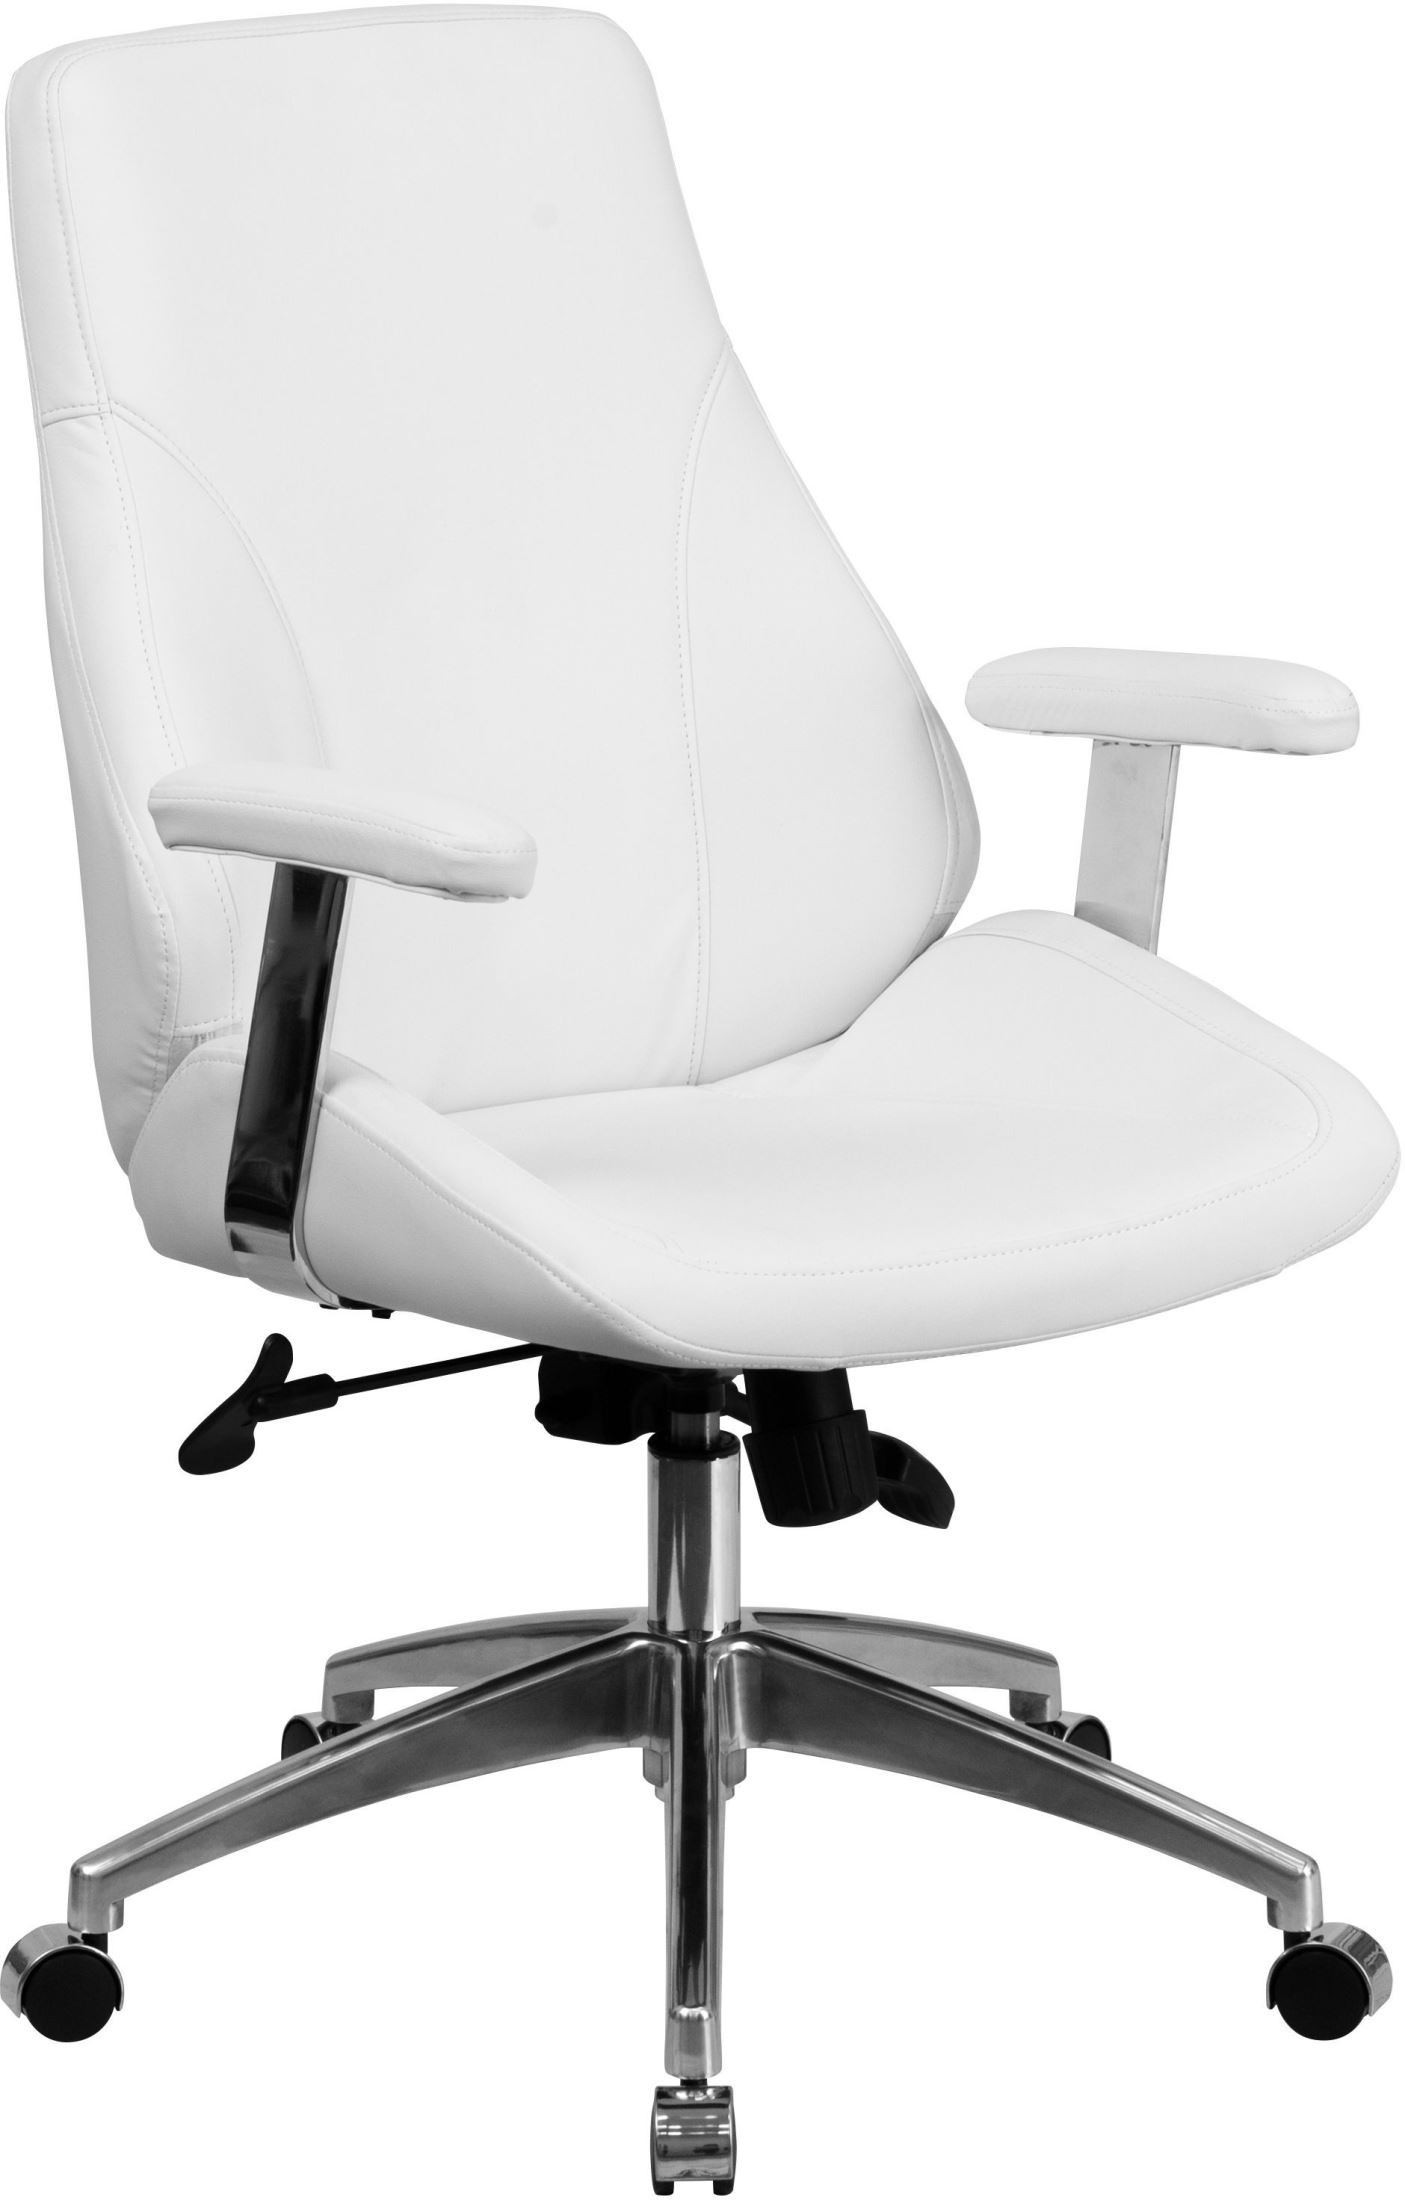 Office Chairs White Mid Back White Leather Executive Swivel Office Chair With